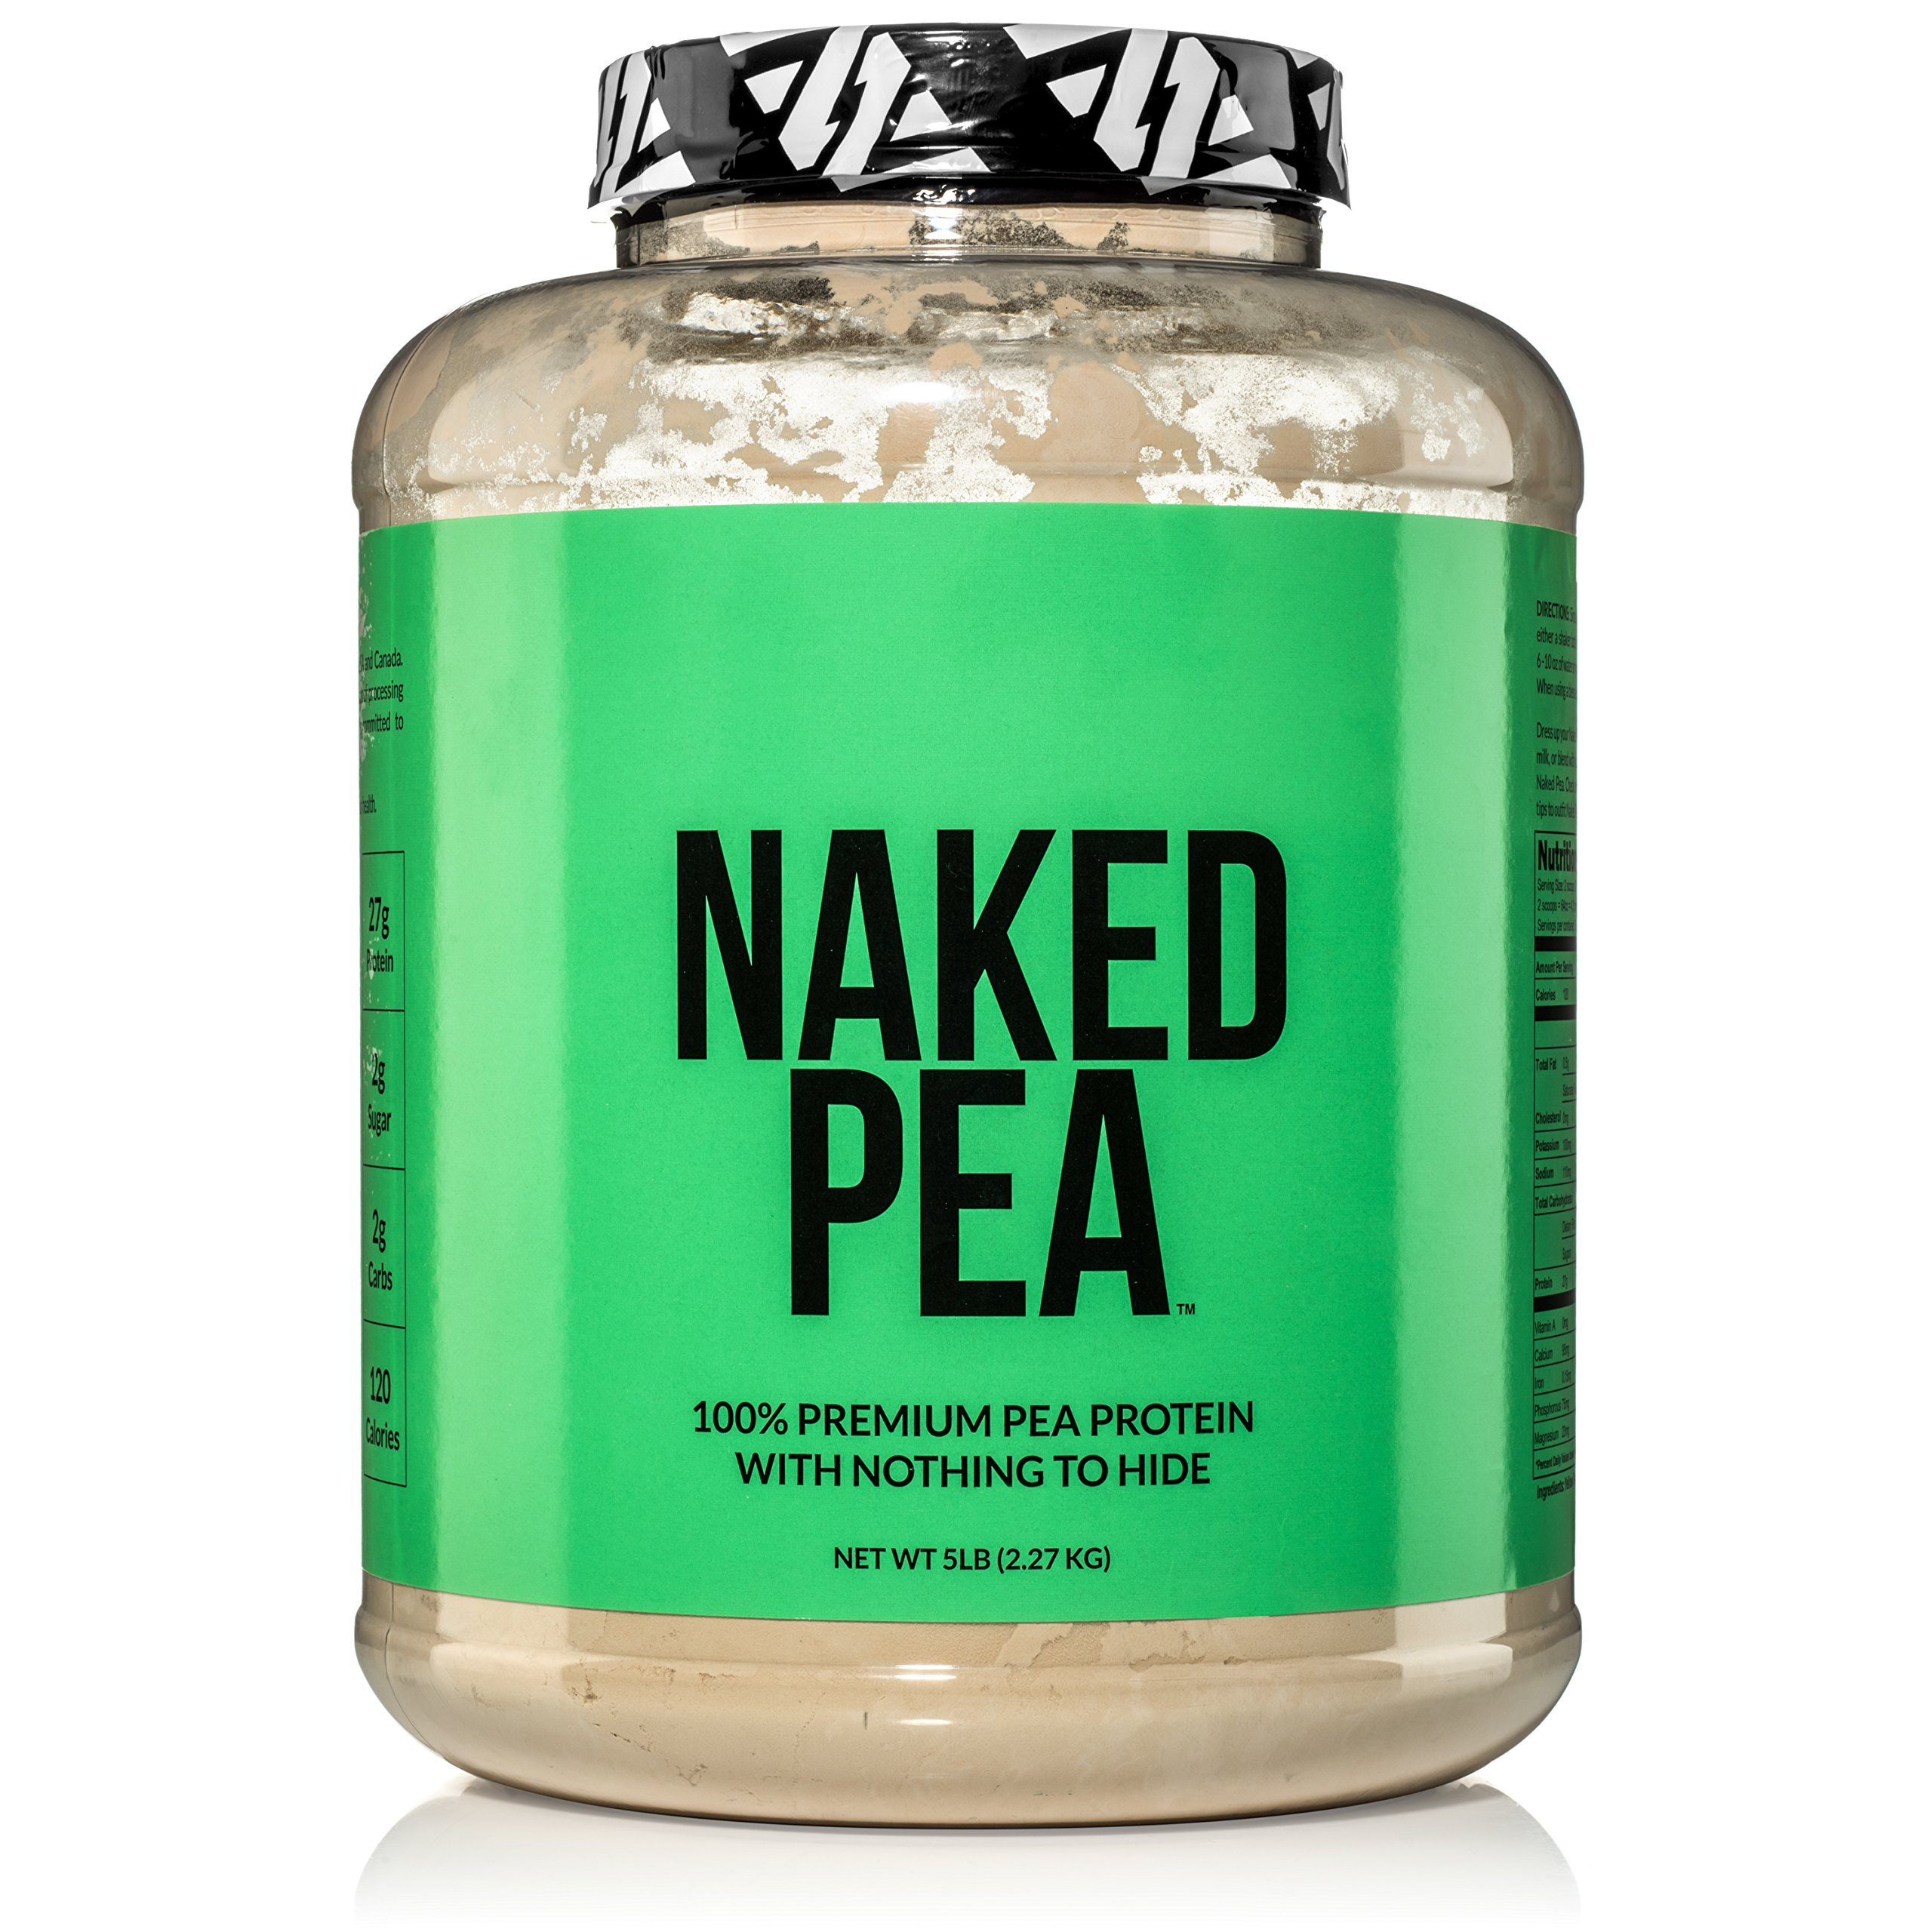 5LB 100% Pea Protein Powder from North American Farms - Vegan Pea Protein Isolate - Plant Protein Powder, Easy to Digest - Speeds Muscle Recovery by NAKED nutrition